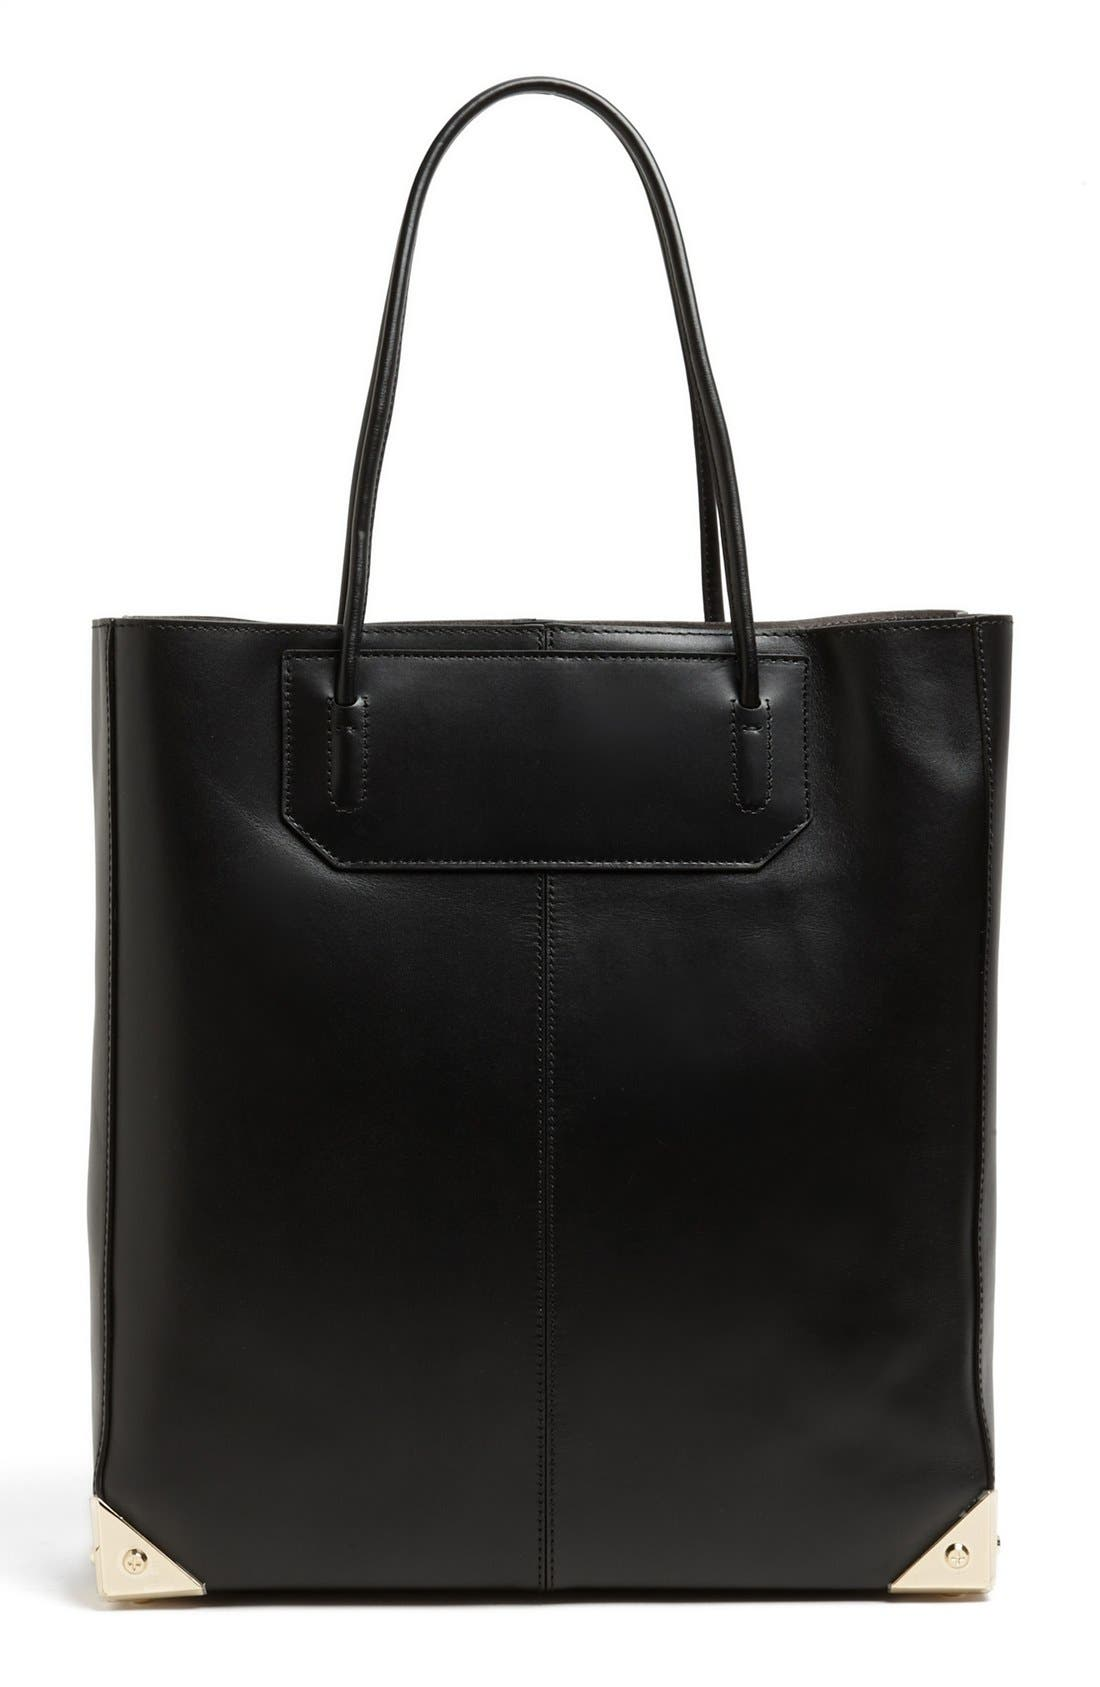 Main Image - Alexander Wang 'Prisma' Leather Tote